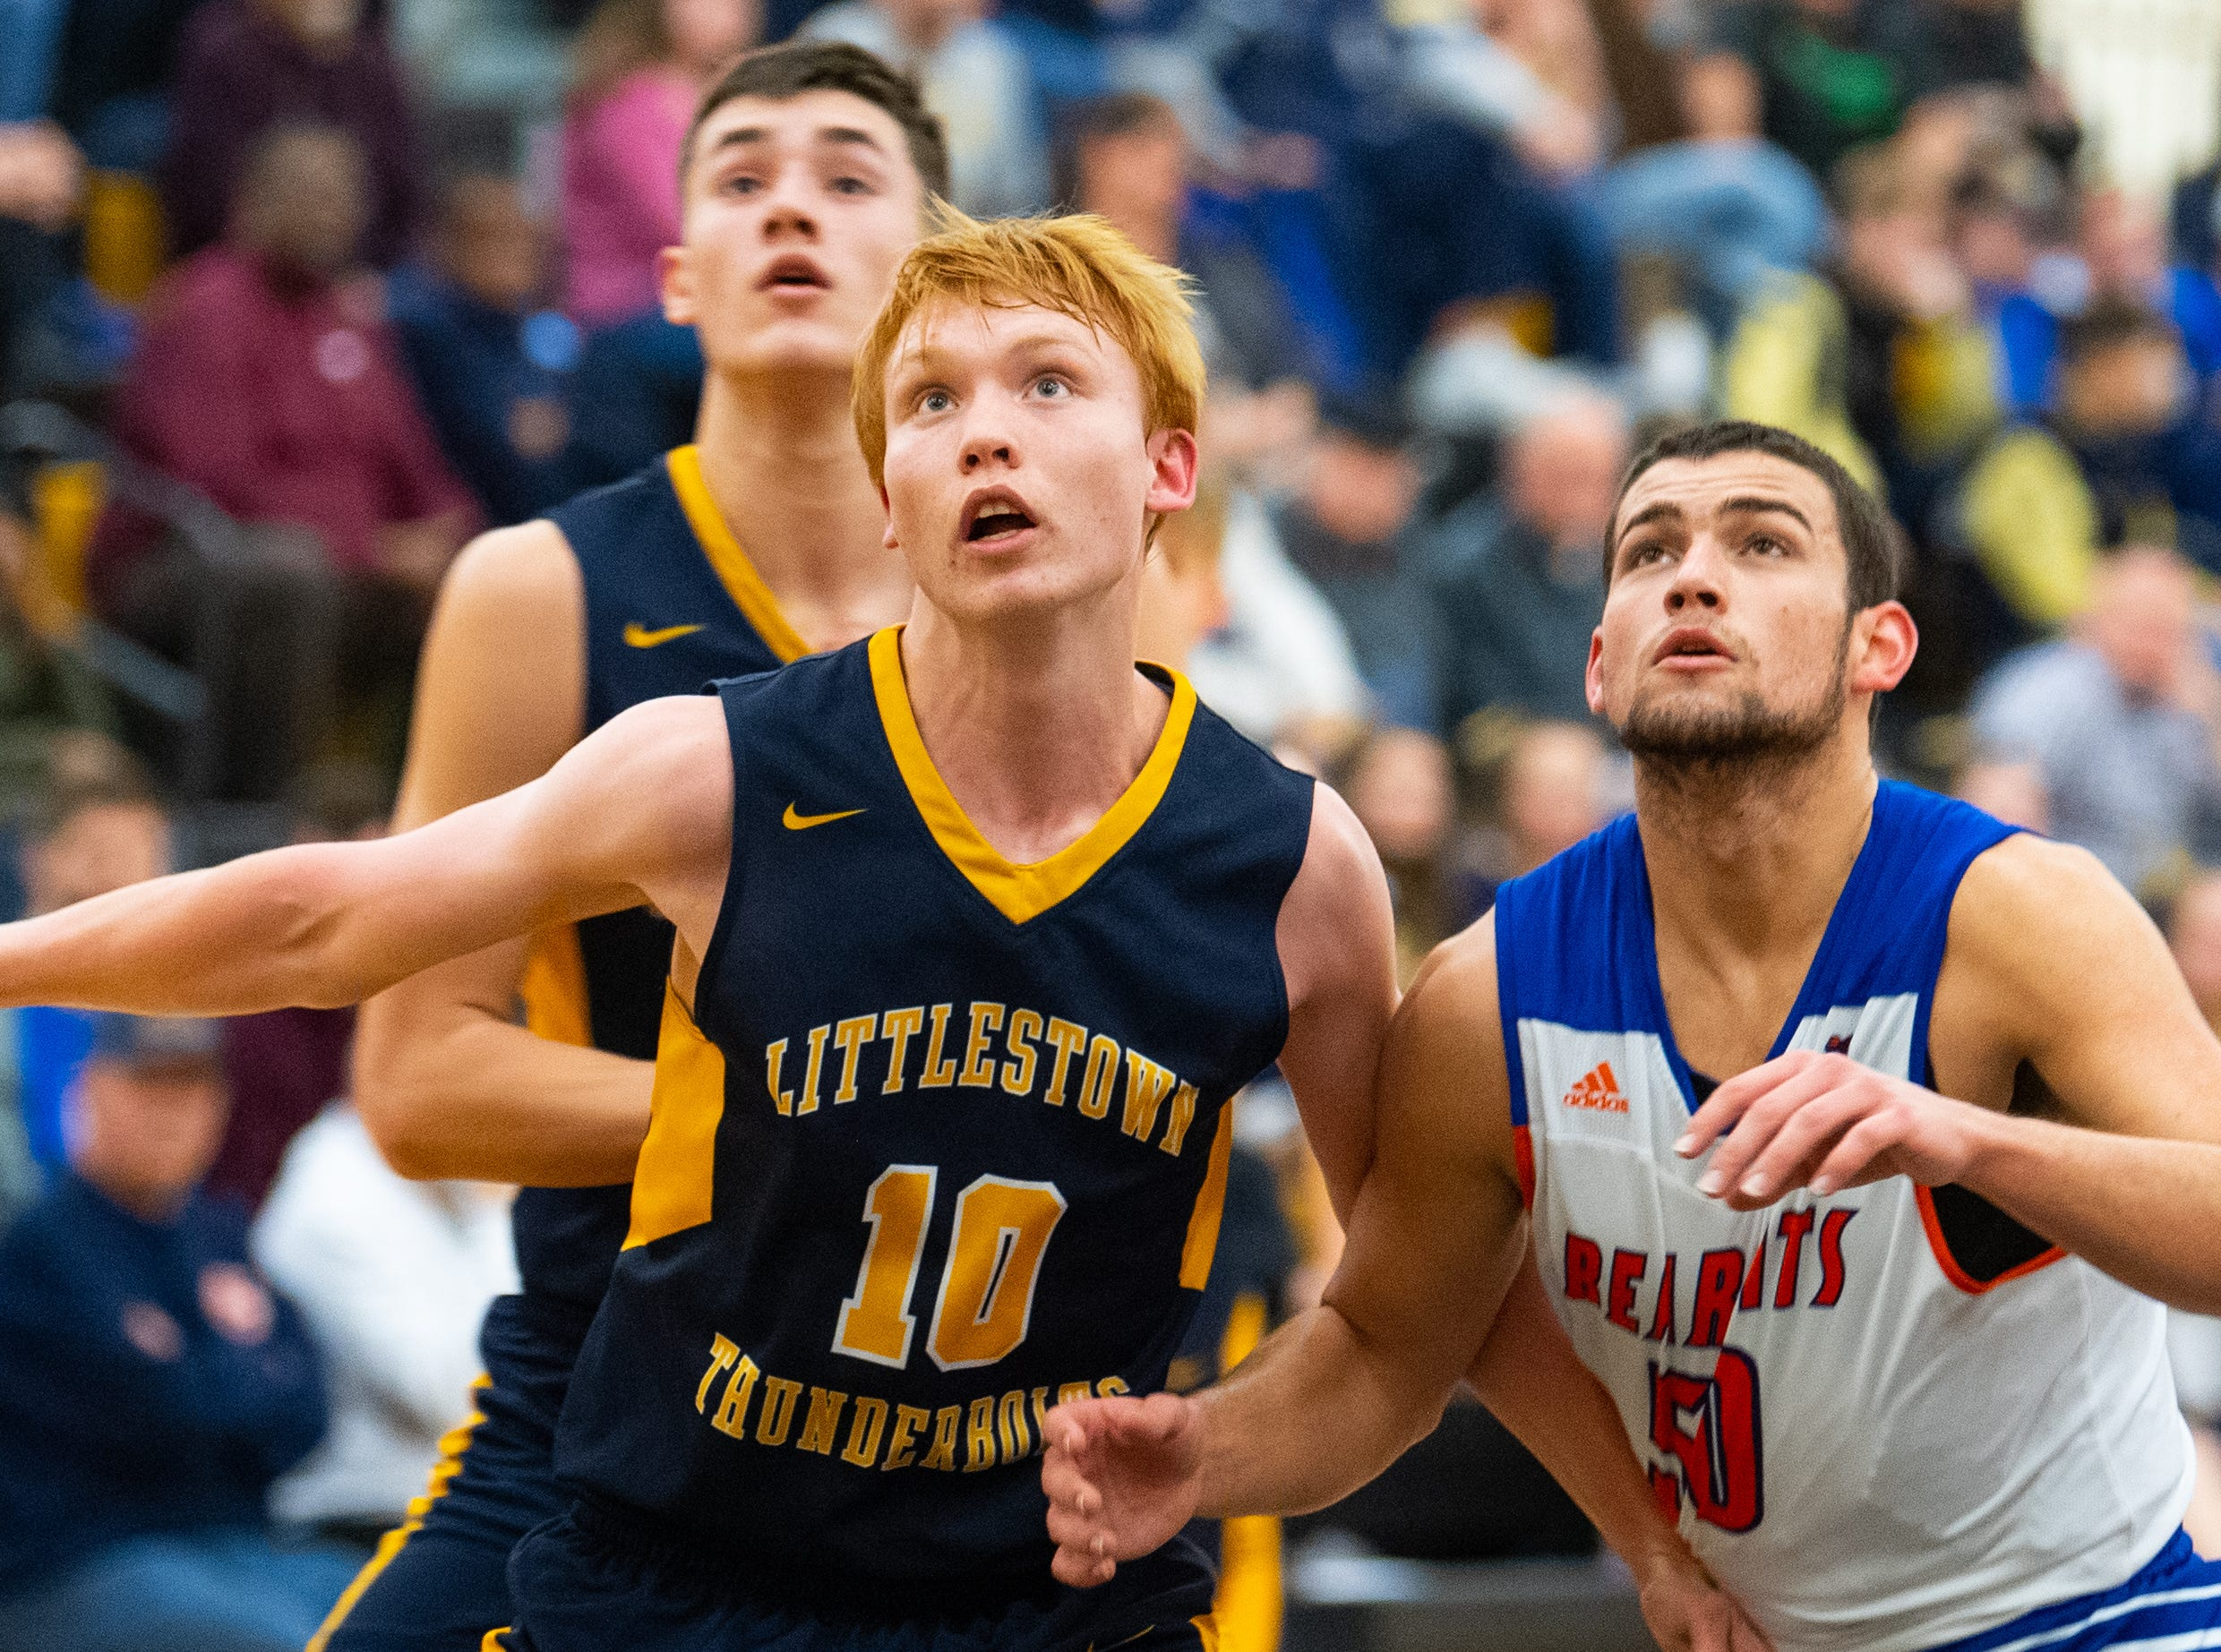 Littlestown's Dan Gazemen (10) and York High's Seth Bernstein (50) fight for position during the YAIAA boys' basketball semifinals between York High and Littlestown, Wednesday, February 13, 2019 at Red Lion Area High School. The Bearcats defeated the Thunderbolts 74 to 51.